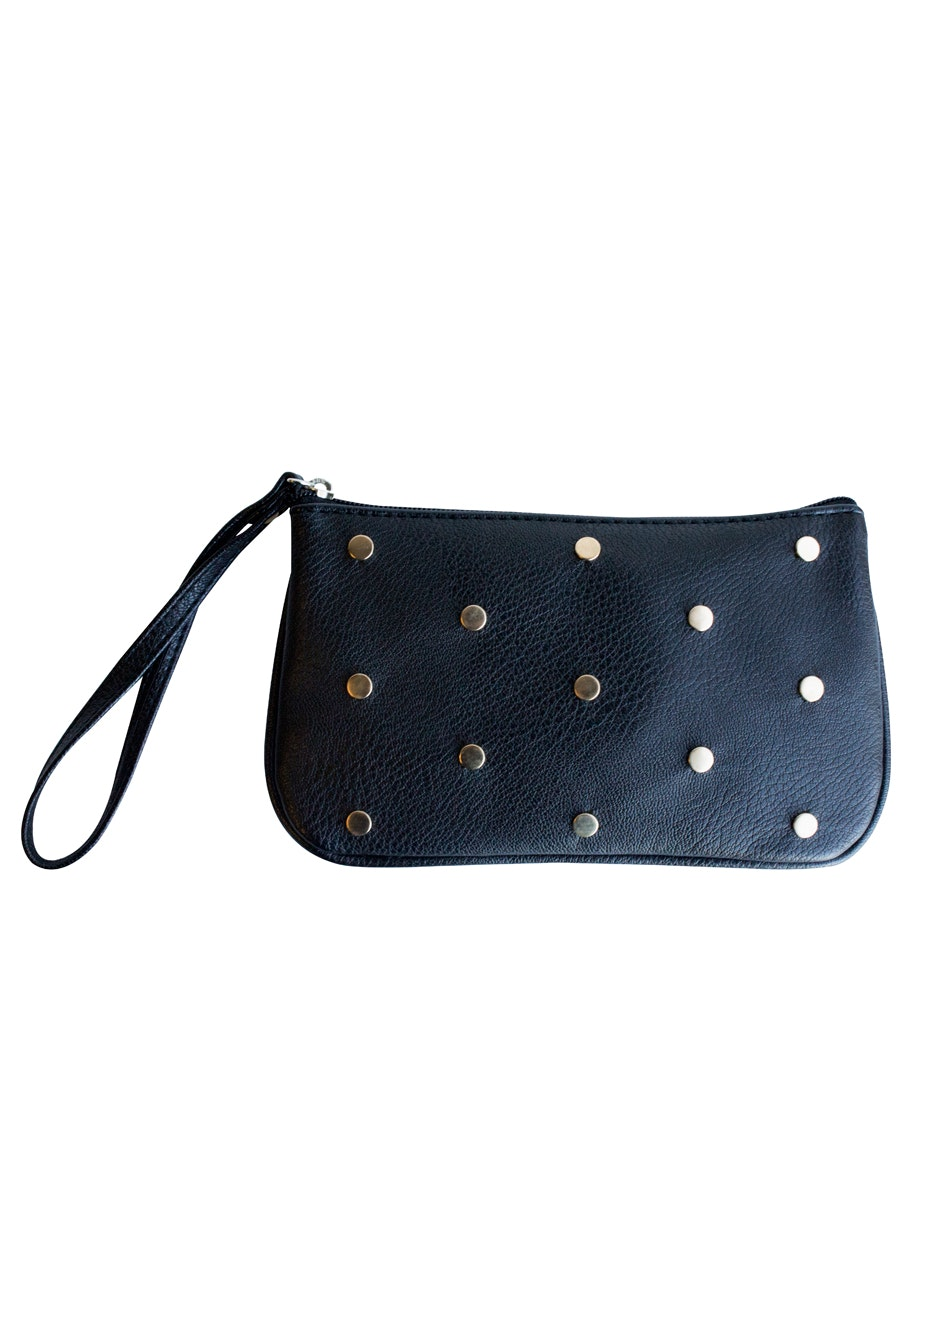 TL+C - Studded Black Carry Case - Black